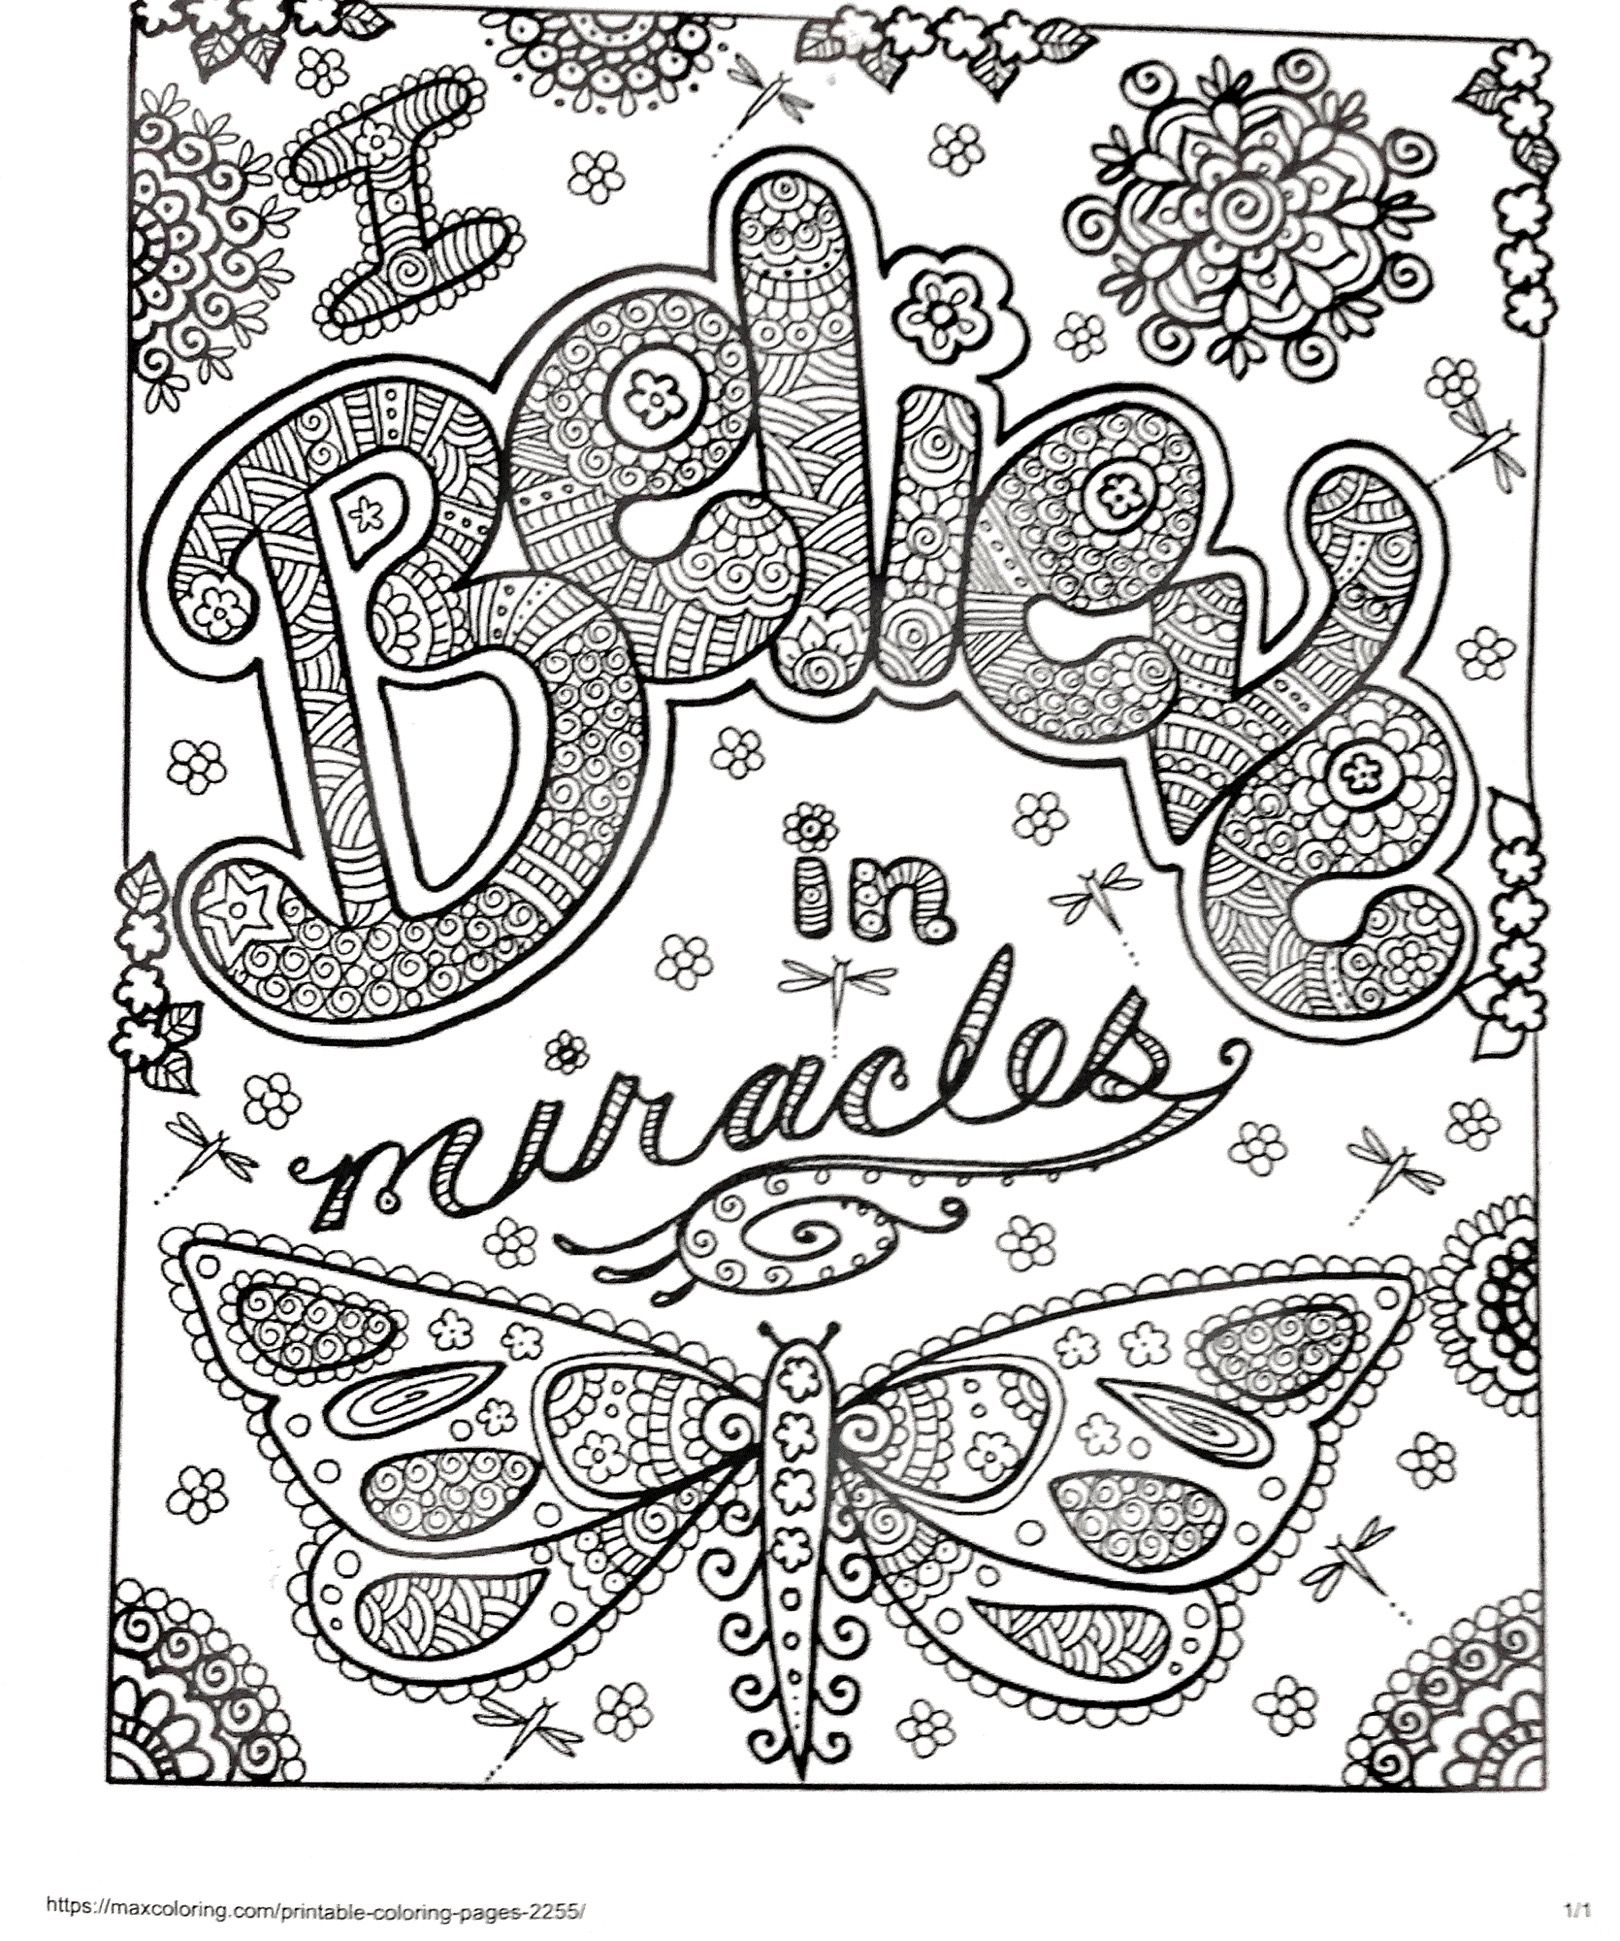 I Believe In Miracles Coloring Books Quote Coloring Pages Butterfly Coloring Page